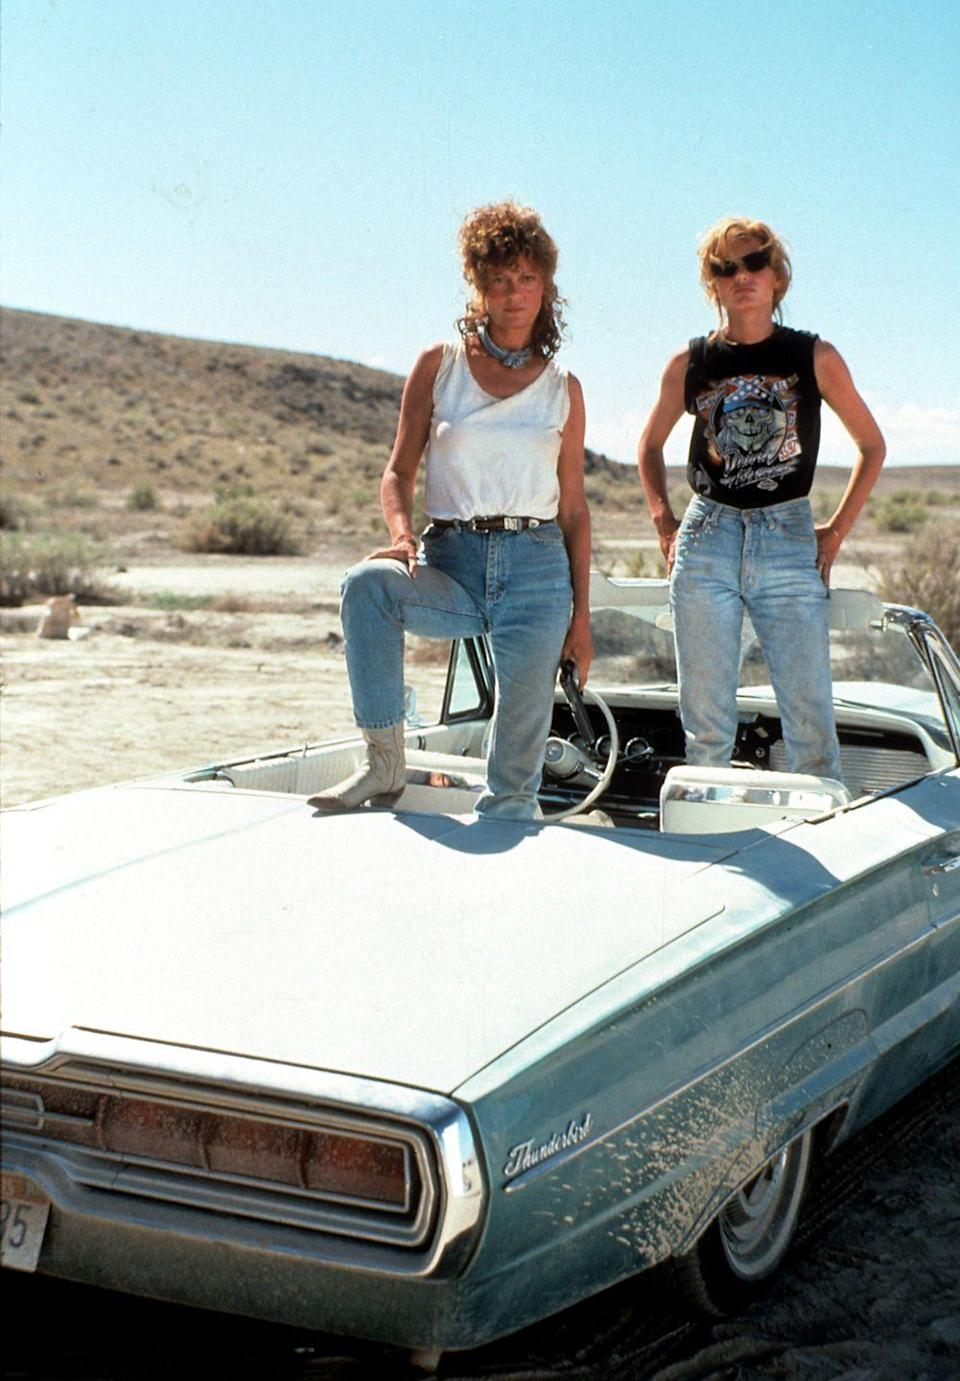 <p>In light wash jeans to match their Thunderbird, Thelma (Geena Davis) and Louise (Susan Sarandon) are the ultimate style goals in this '90s film. Not pictured: A young, denim-clad Brad Pitt — enough said. </p>